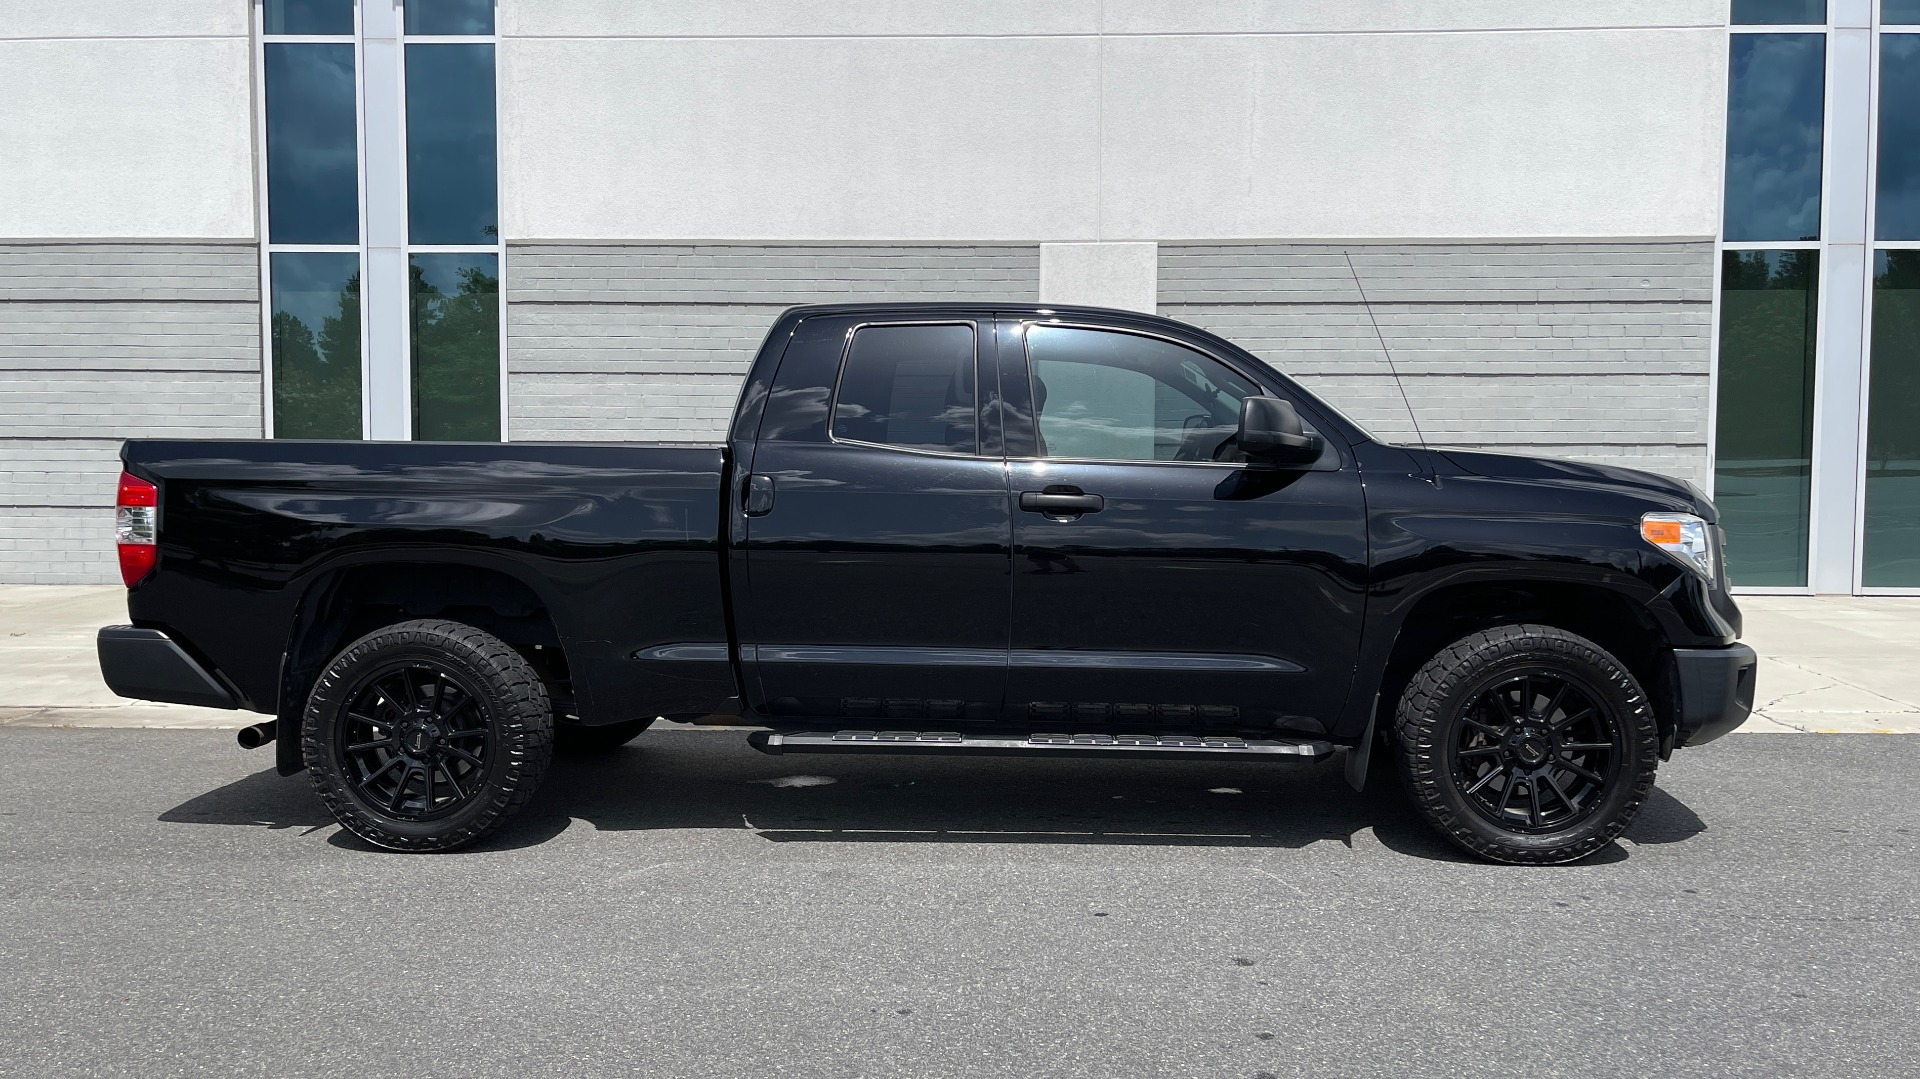 Used 2017 Toyota TUNDRA 4WD SR DOUBLECAB / 4WD / 6.5' BED / V8 / AUTO / REARVIEW for sale Sold at Formula Imports in Charlotte NC 28227 6